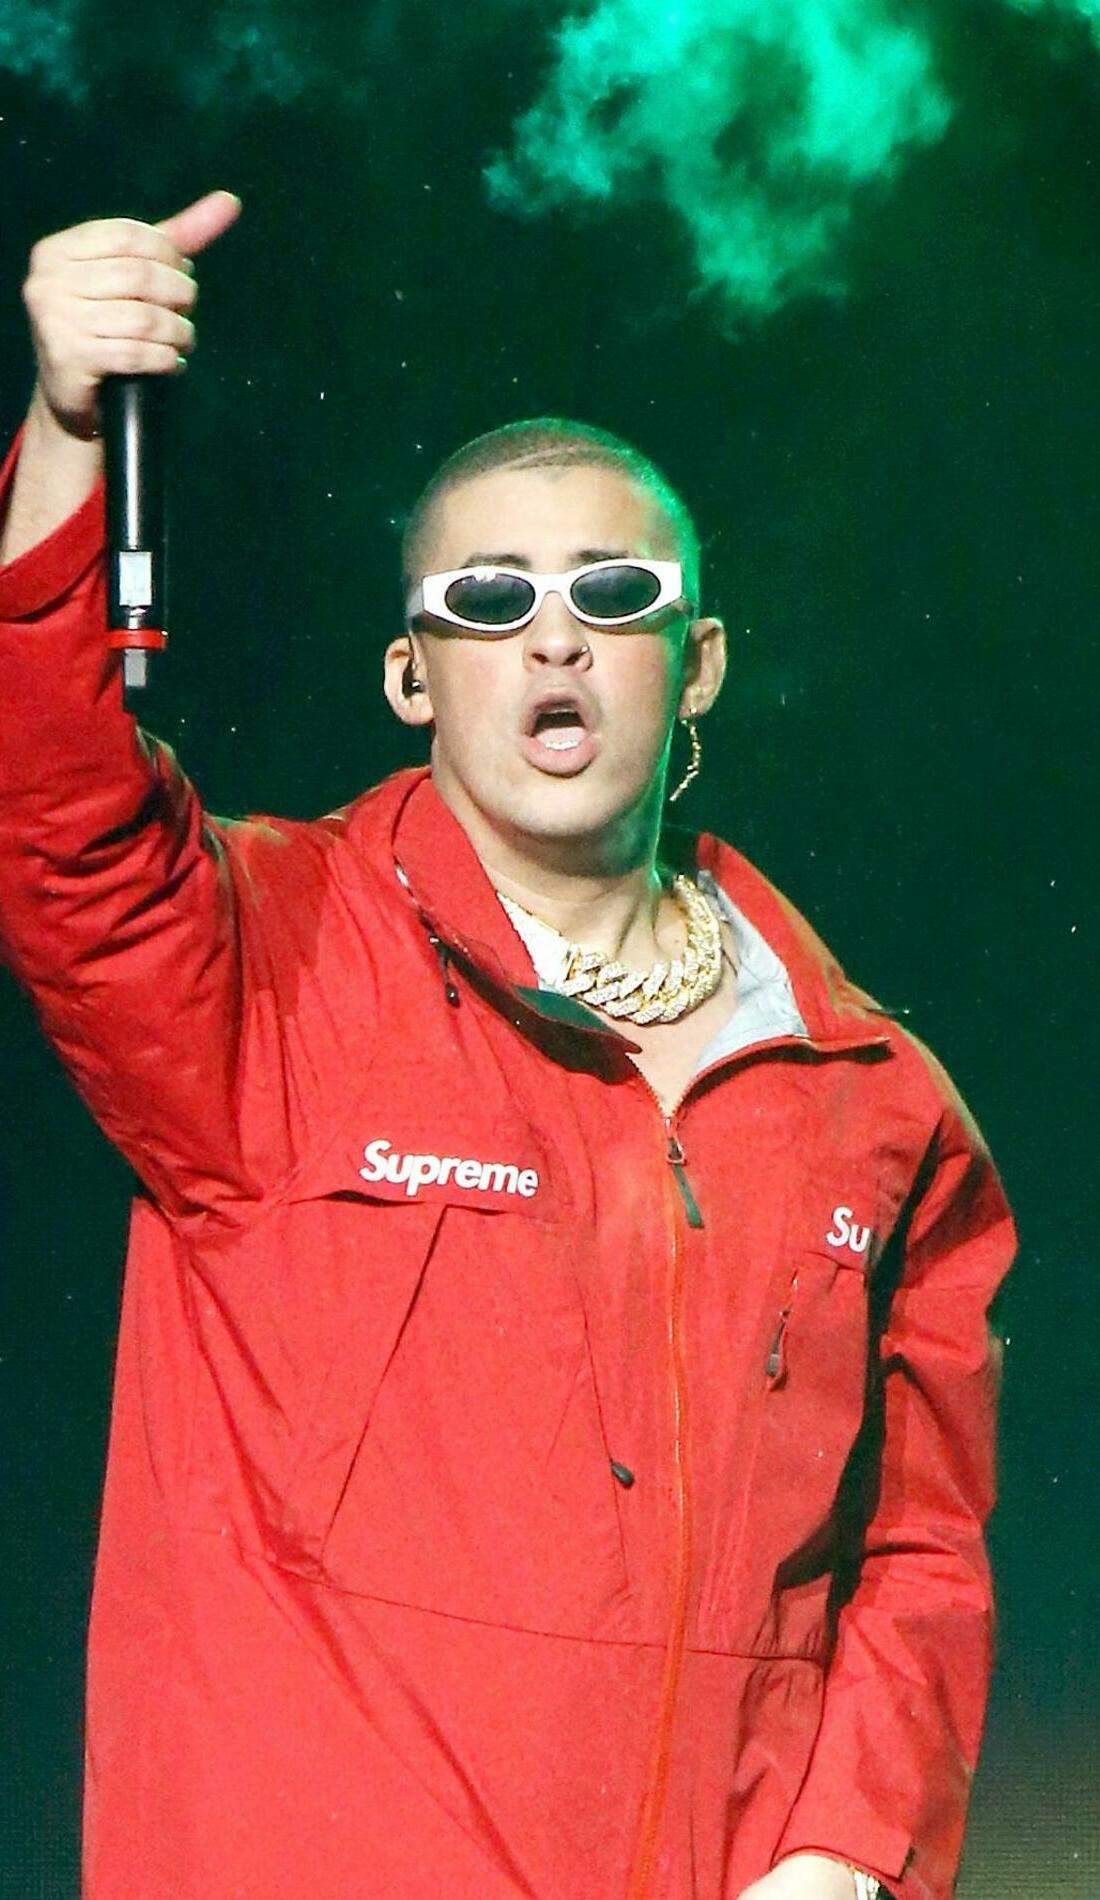 A Bad Bunny live event